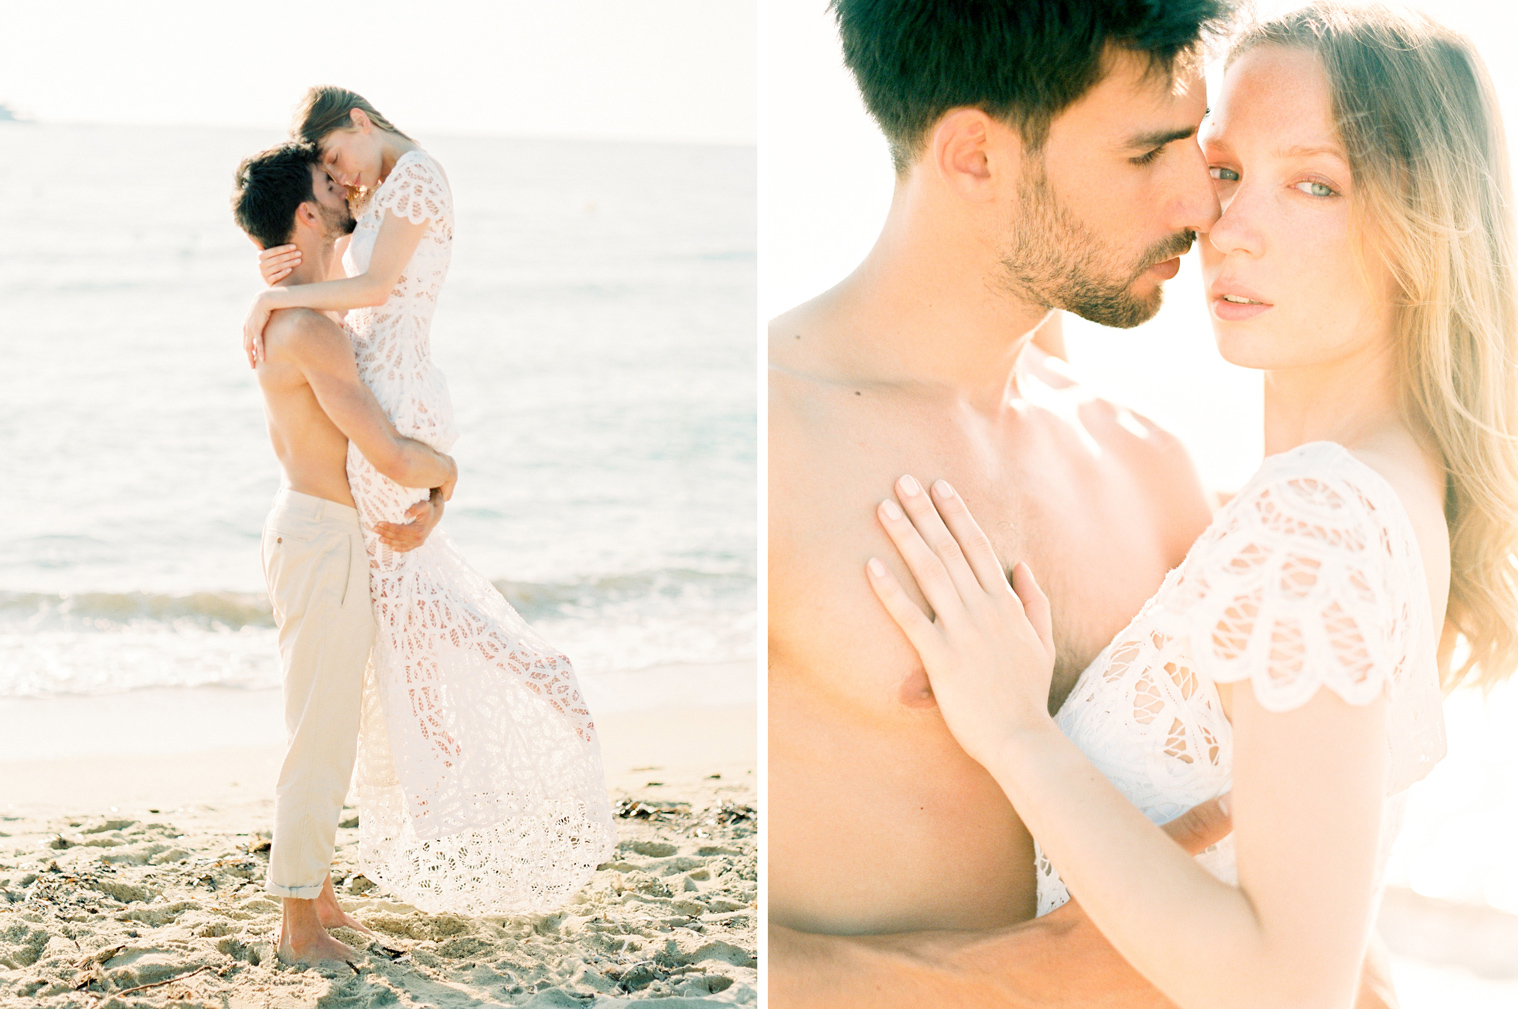 Saint Tropez Honeymoon Photo Session by Ashley Ludaescher Photography (18)